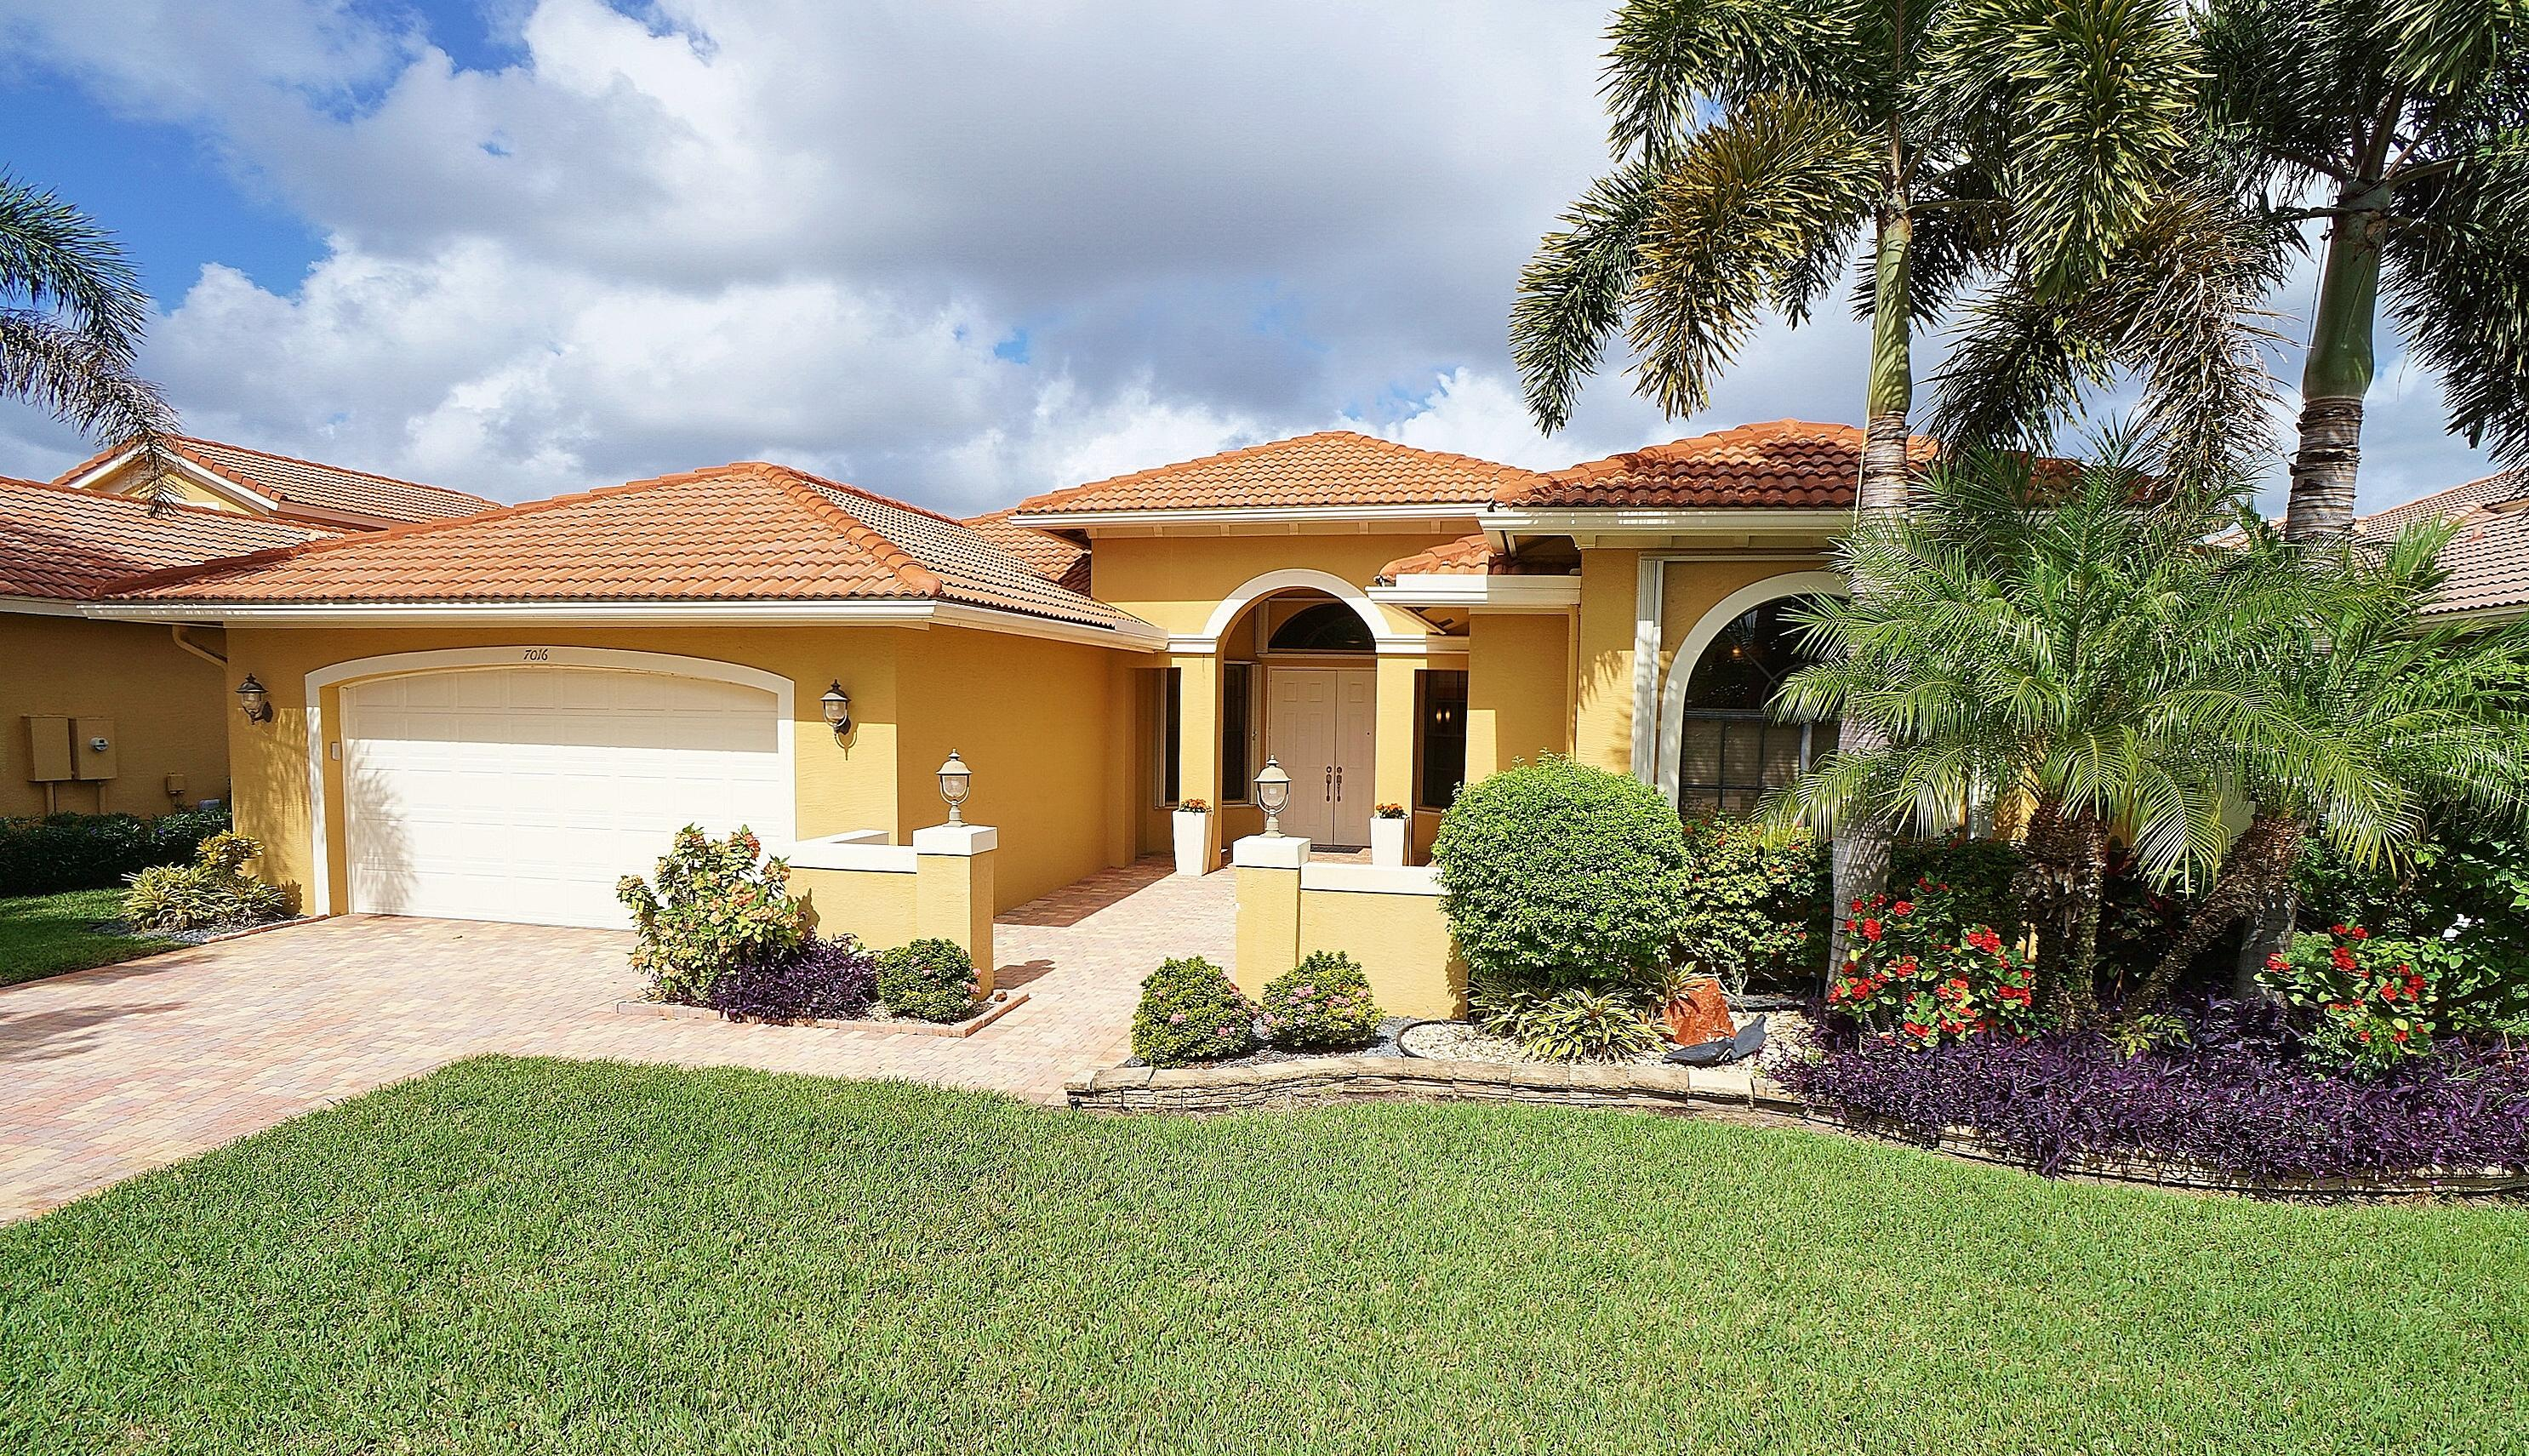 7016 Caviro Lane, Boynton Beach, Florida 33437, 3 Bedrooms Bedrooms, ,2.1 BathroomsBathrooms,Single Family,For Sale,Caviro,RX-10504023